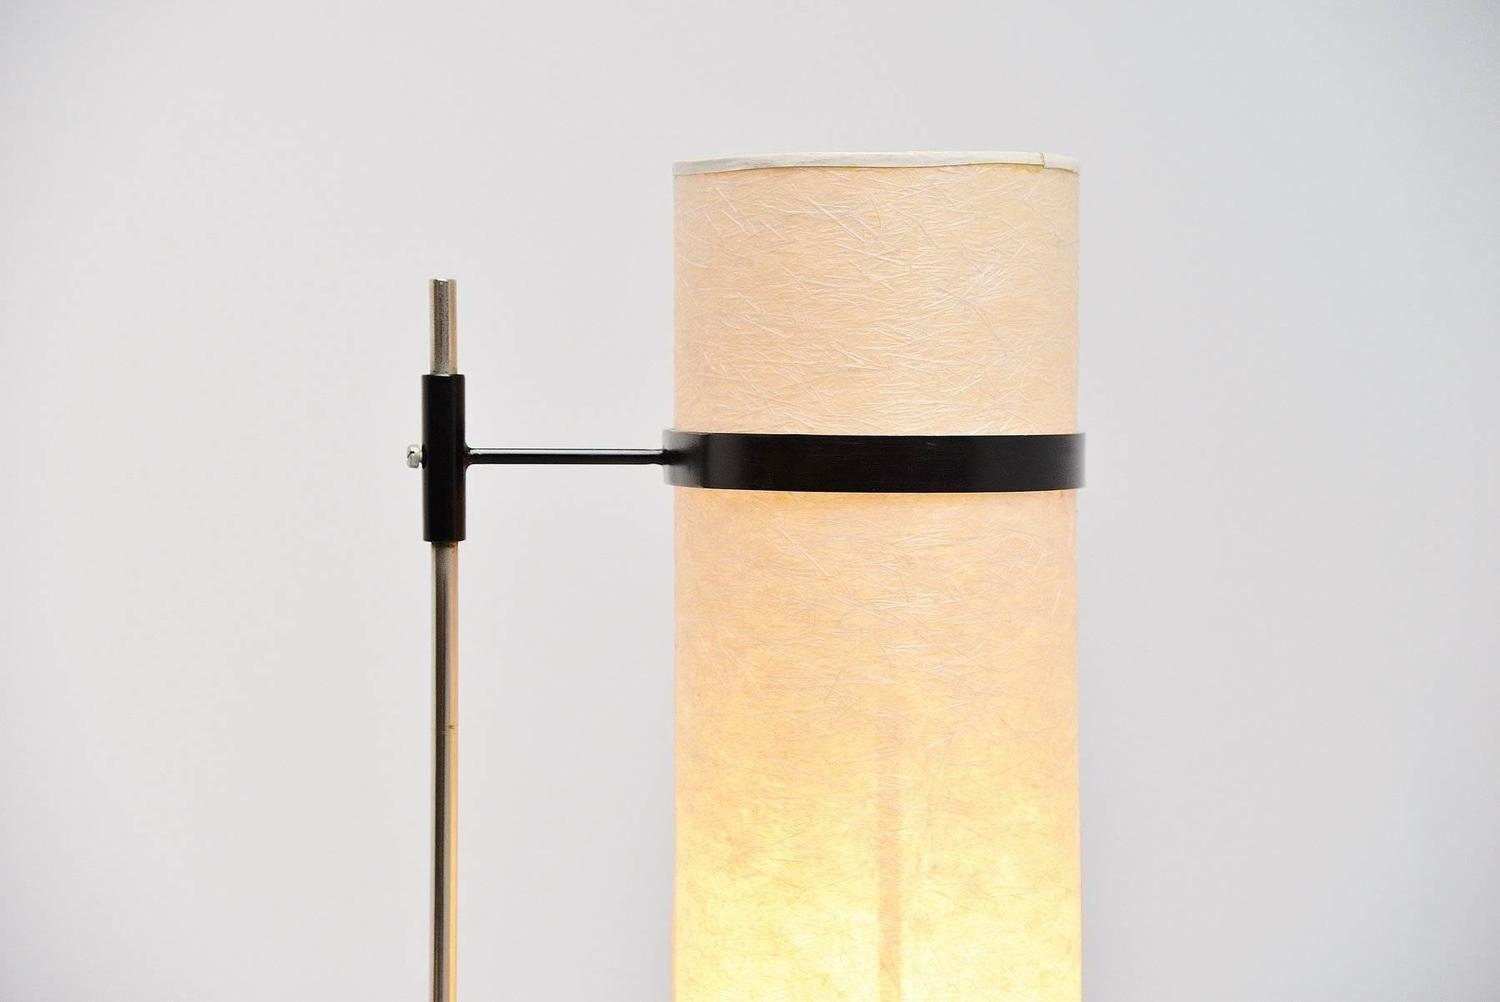 dutch modernist floor lamp with rice paper shade 1960 at 1stdibs. Black Bedroom Furniture Sets. Home Design Ideas